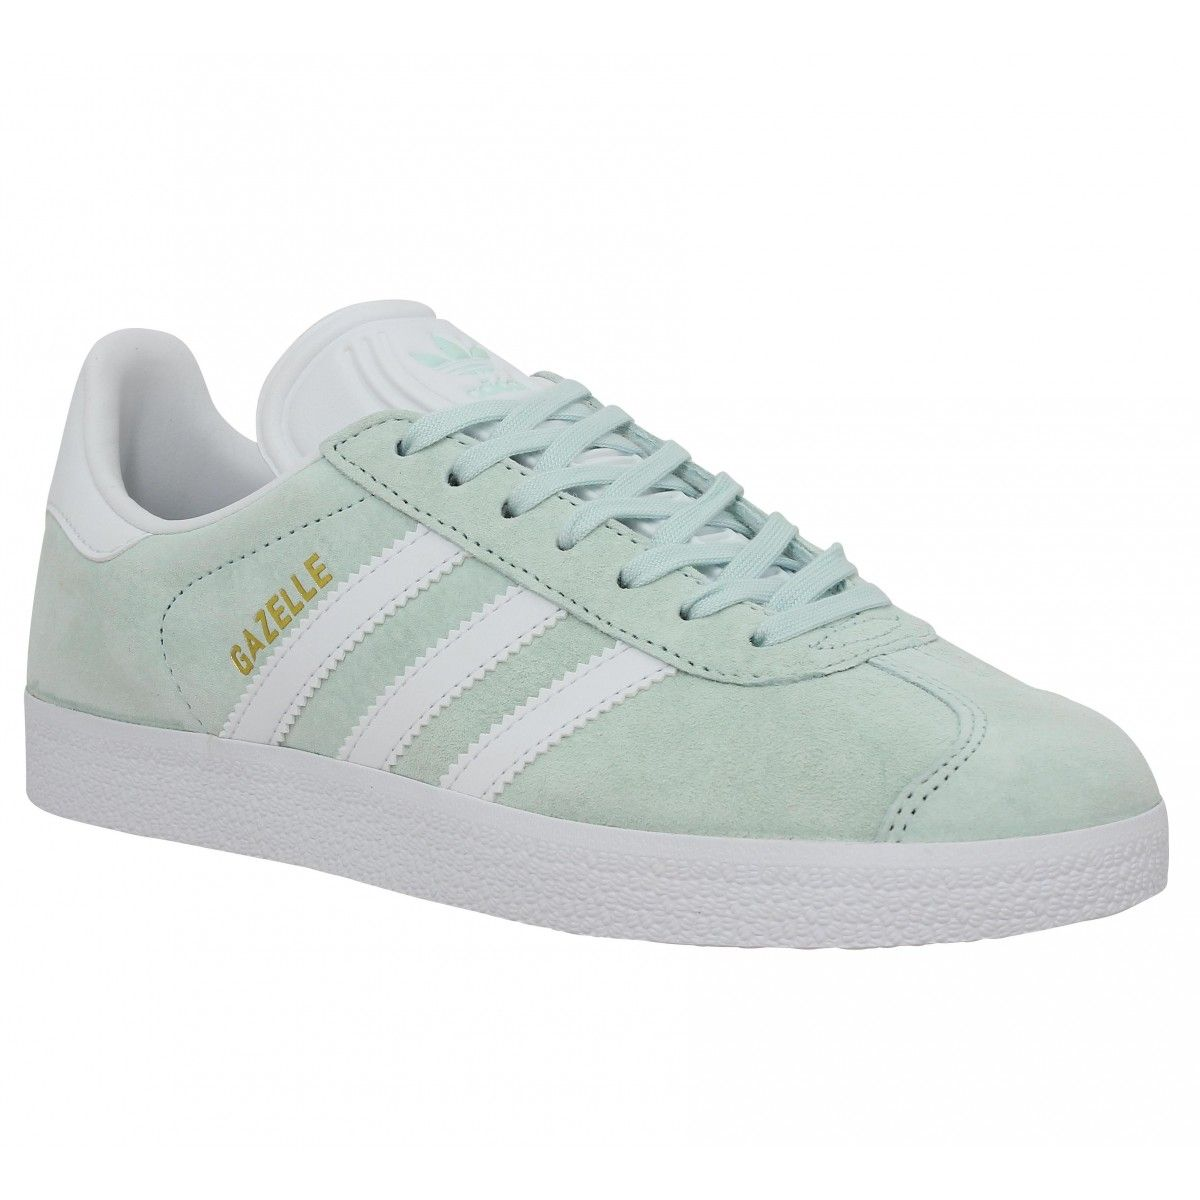 Baskets & Tennis mode ADIDAS Gazelle Ice Mint | Mode adidas